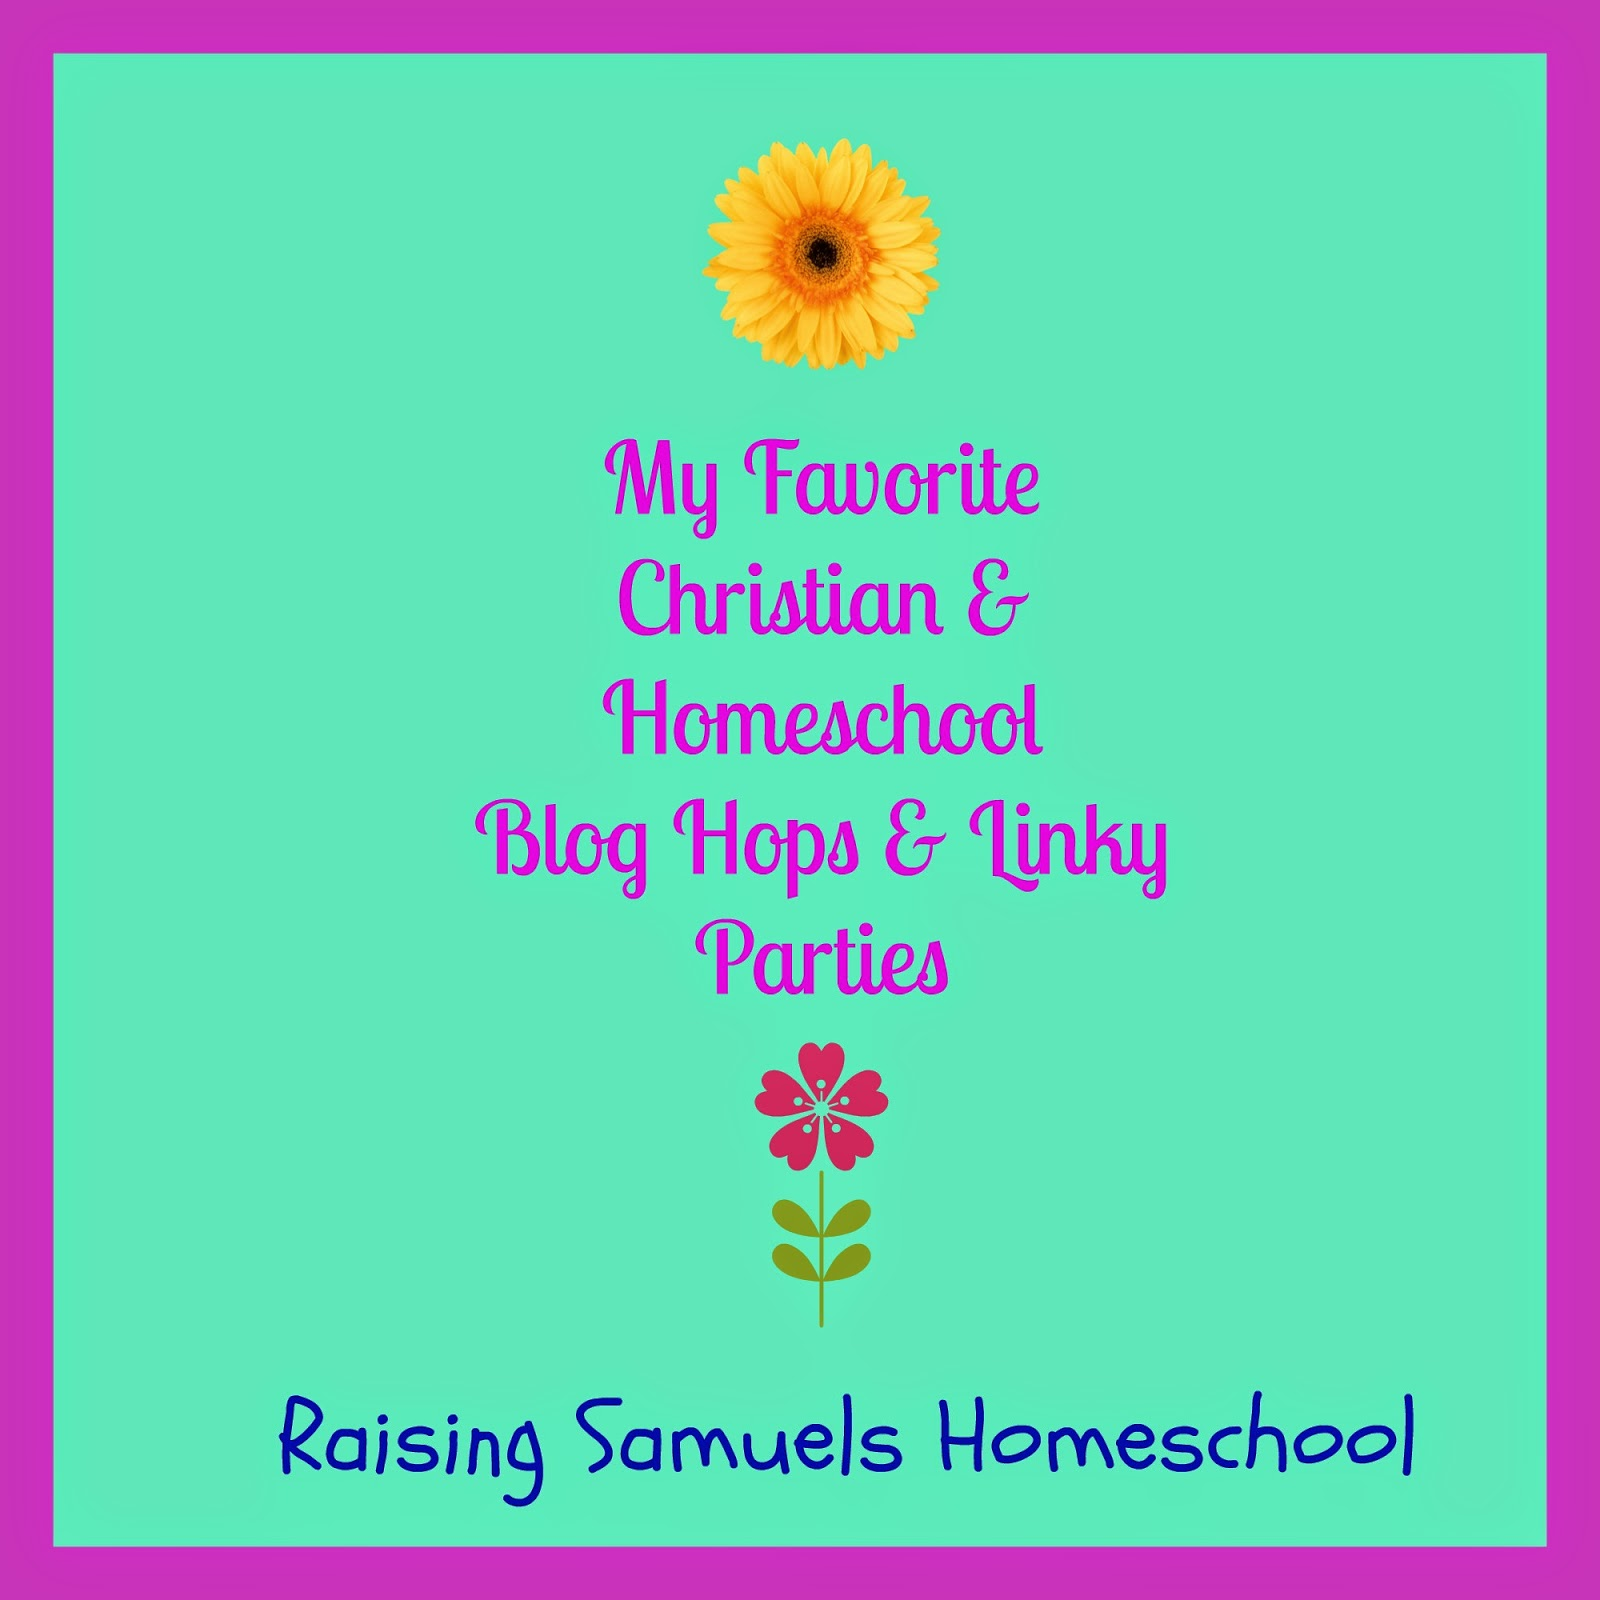 My Favorite Christian & Homeschool Blog Hops & Linky Parties